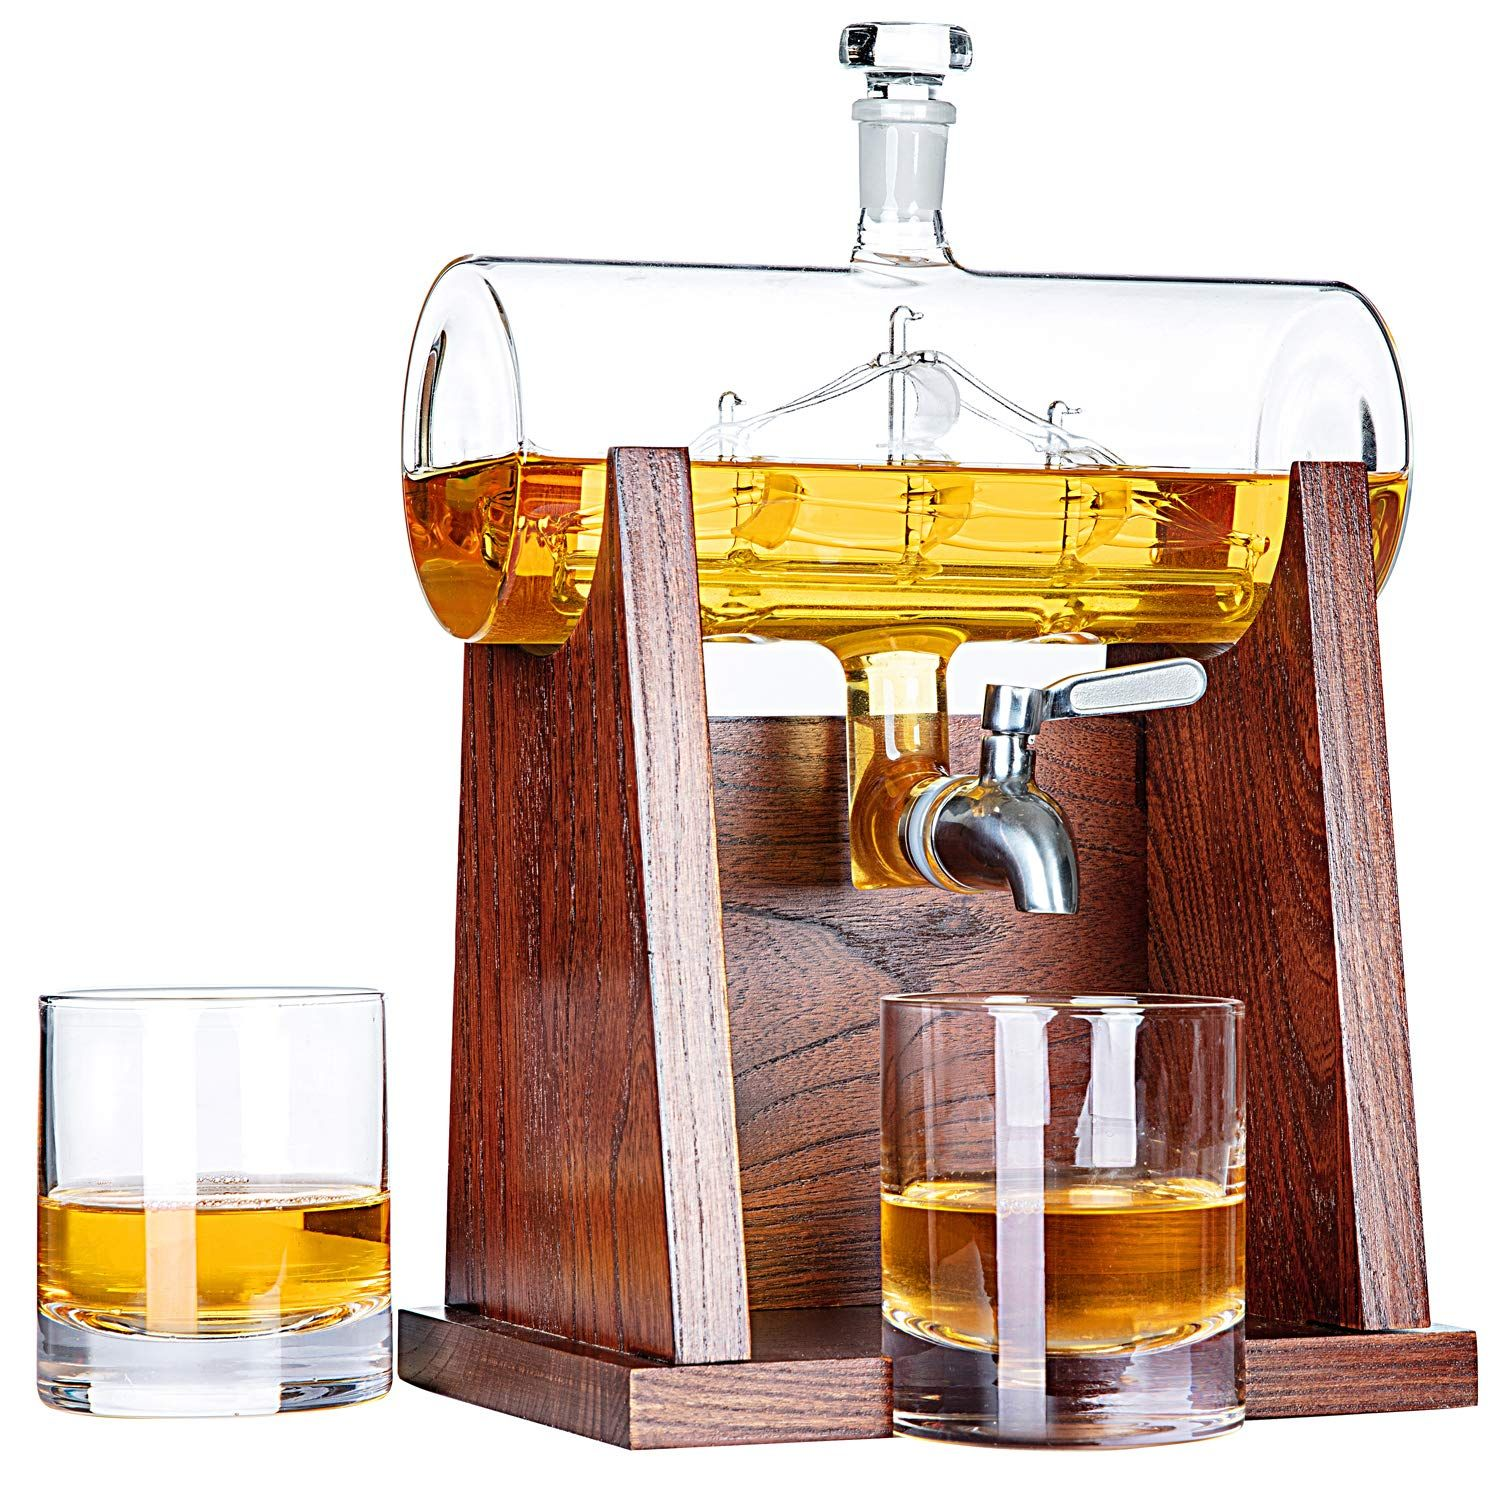 Whiskey Decanter Set with 2 Glasses. Birthday or Christmas